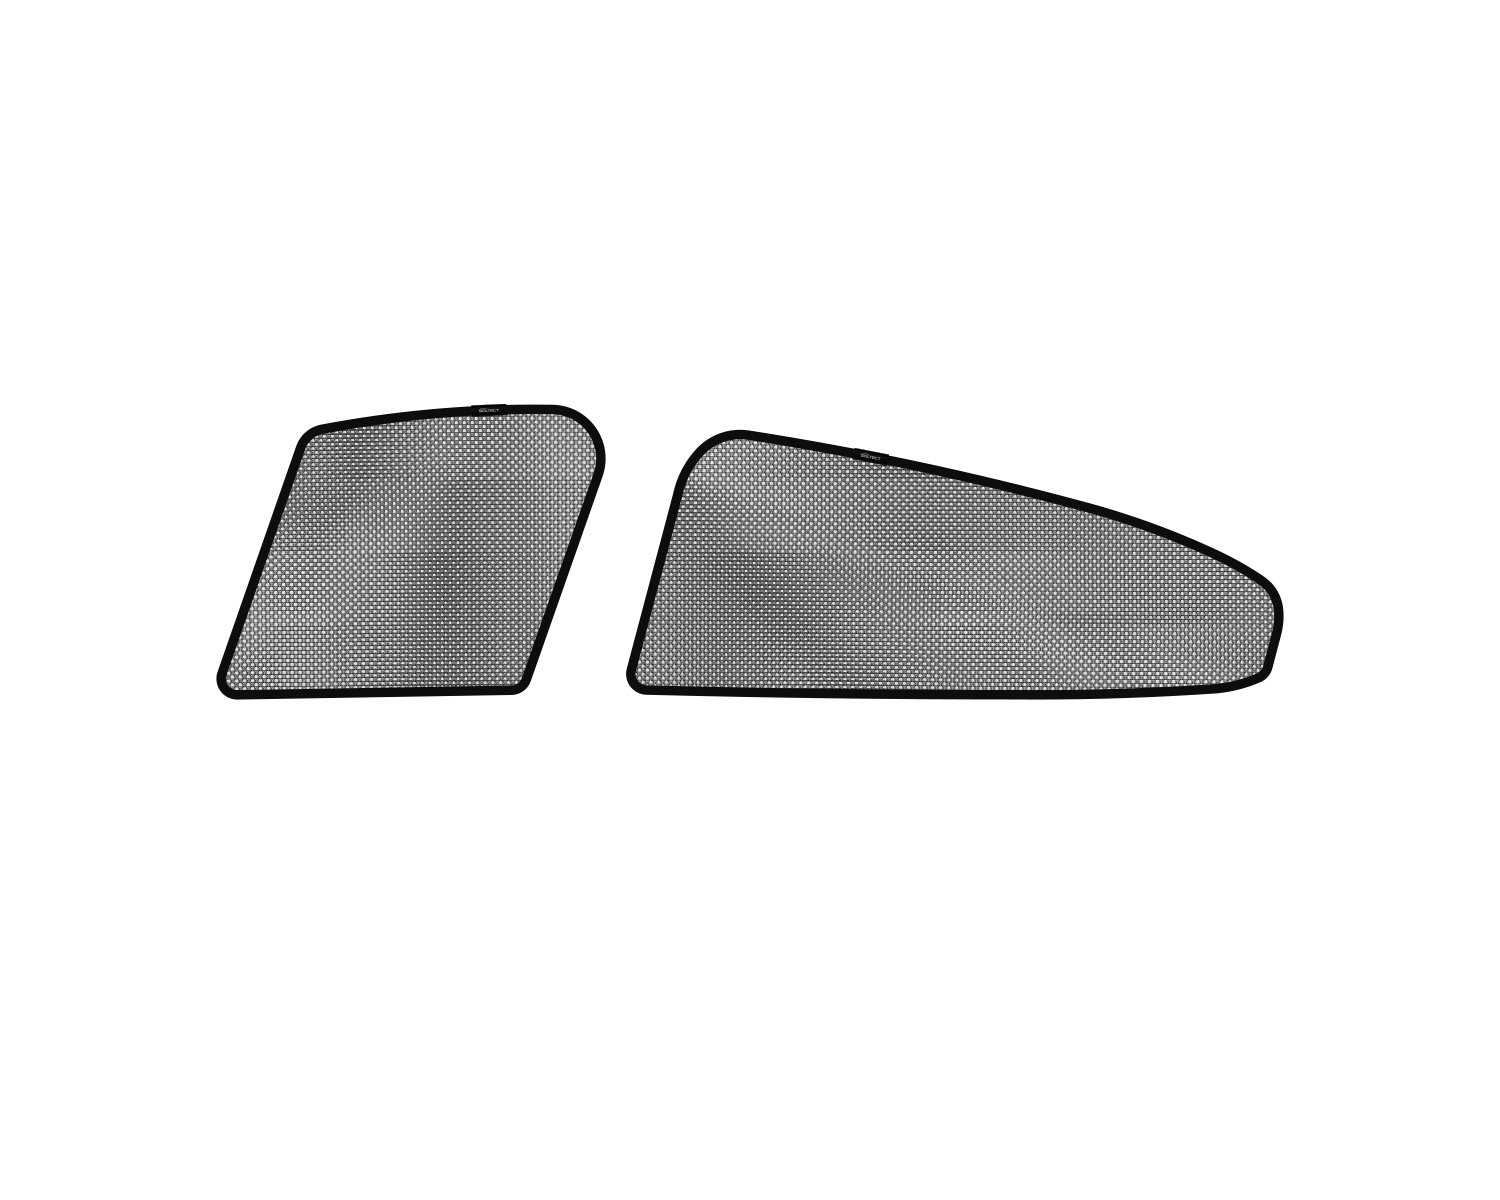 3D MAXpider S1MZ43 Soltect Complete Set Custom Fit Sun Shade for Select Mazda 3 Hatchback Models S1MZ0435